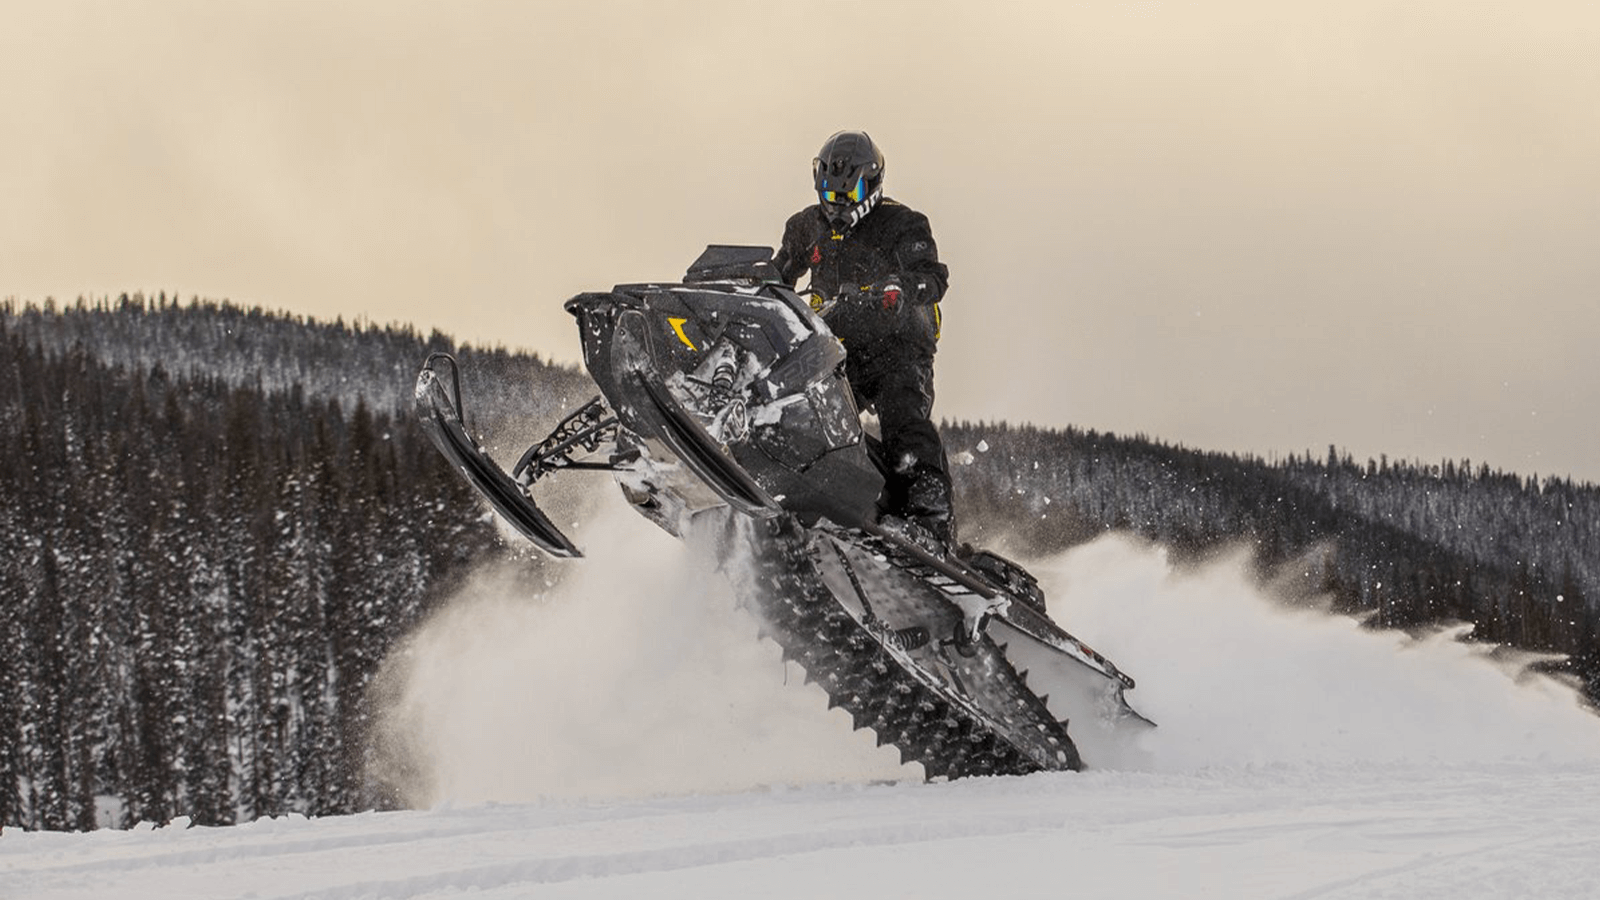 Snowmobiler jumping over some snow in the mountains.